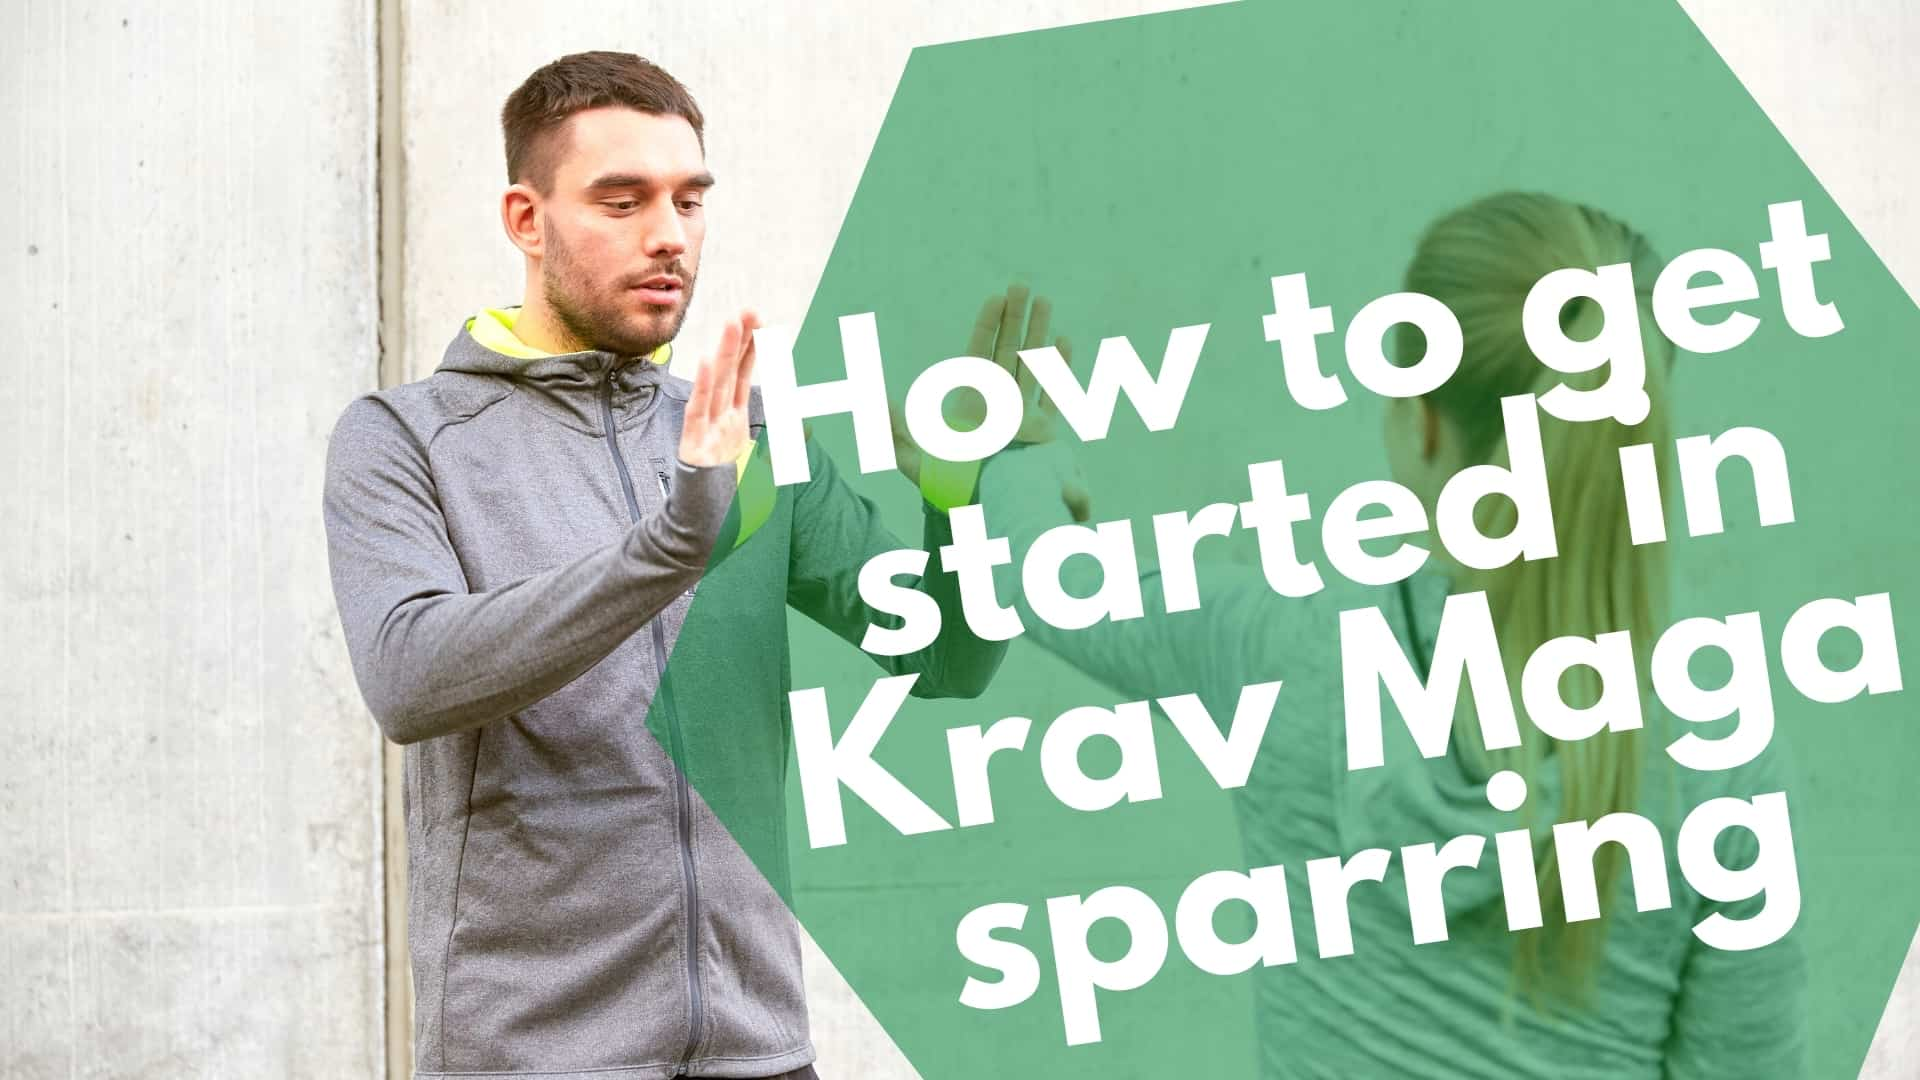 How to get started in Krav Maga sparring